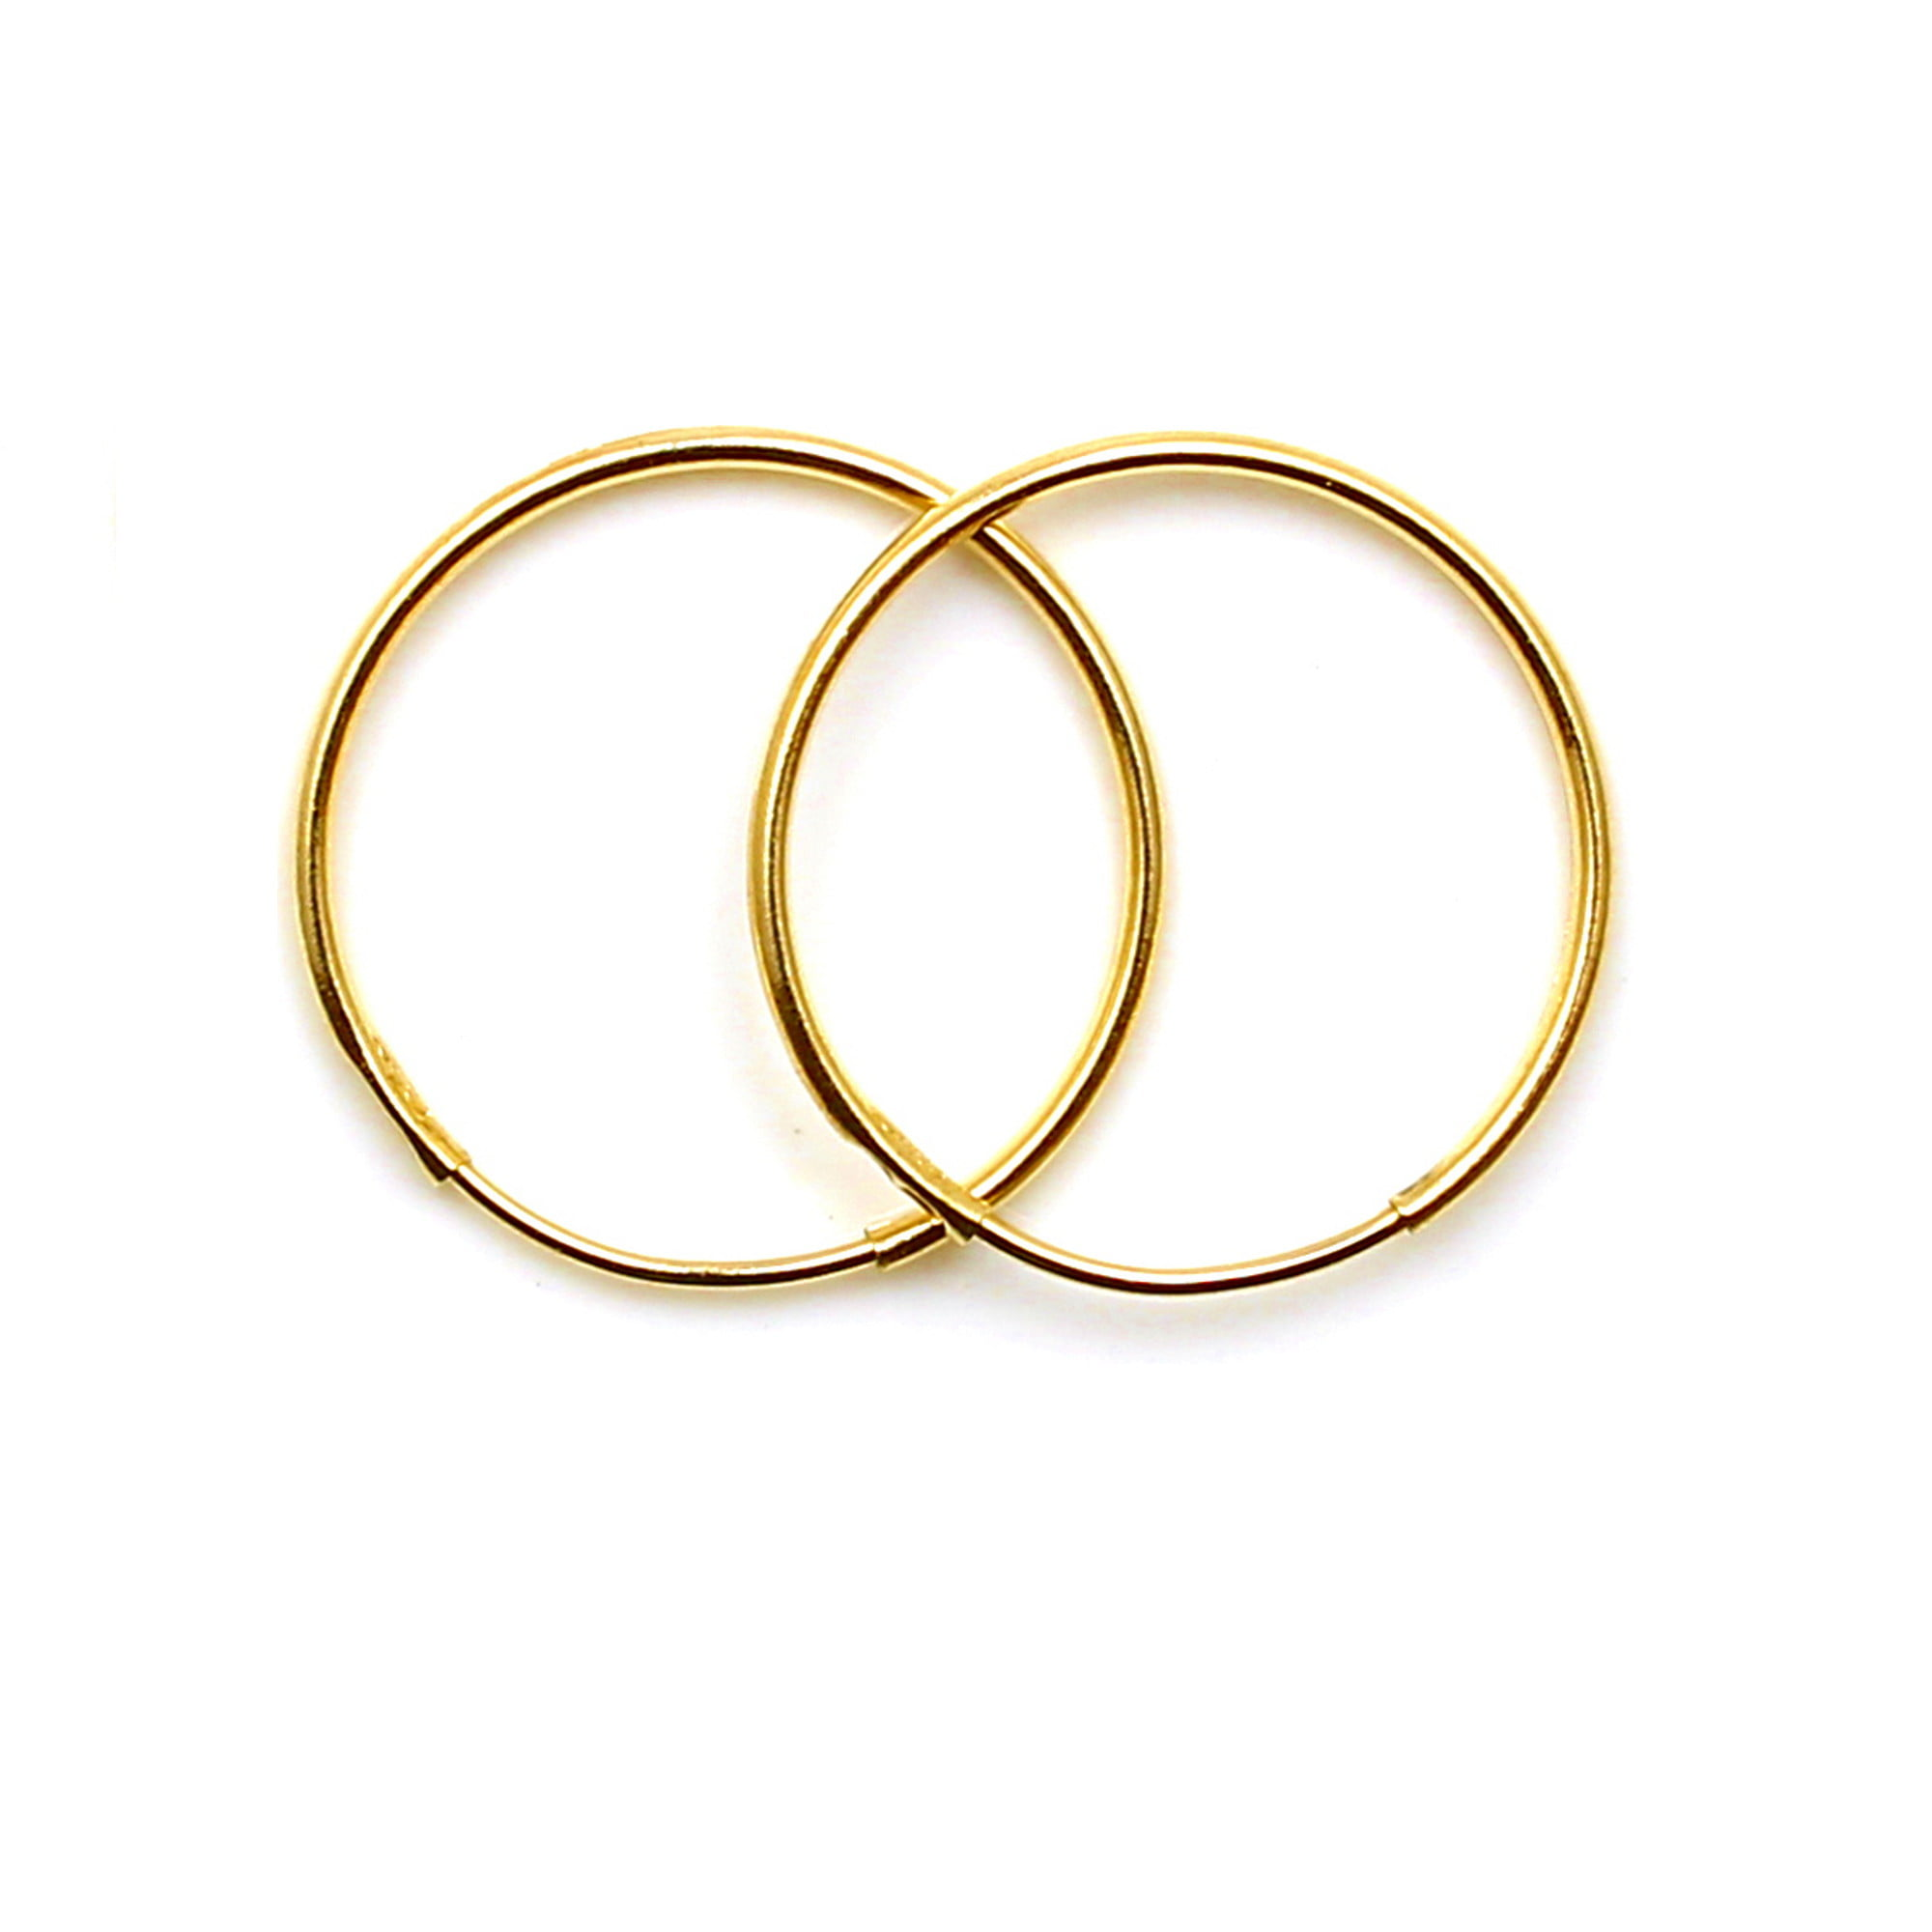 12mm gold hoops 9ct yellow gold